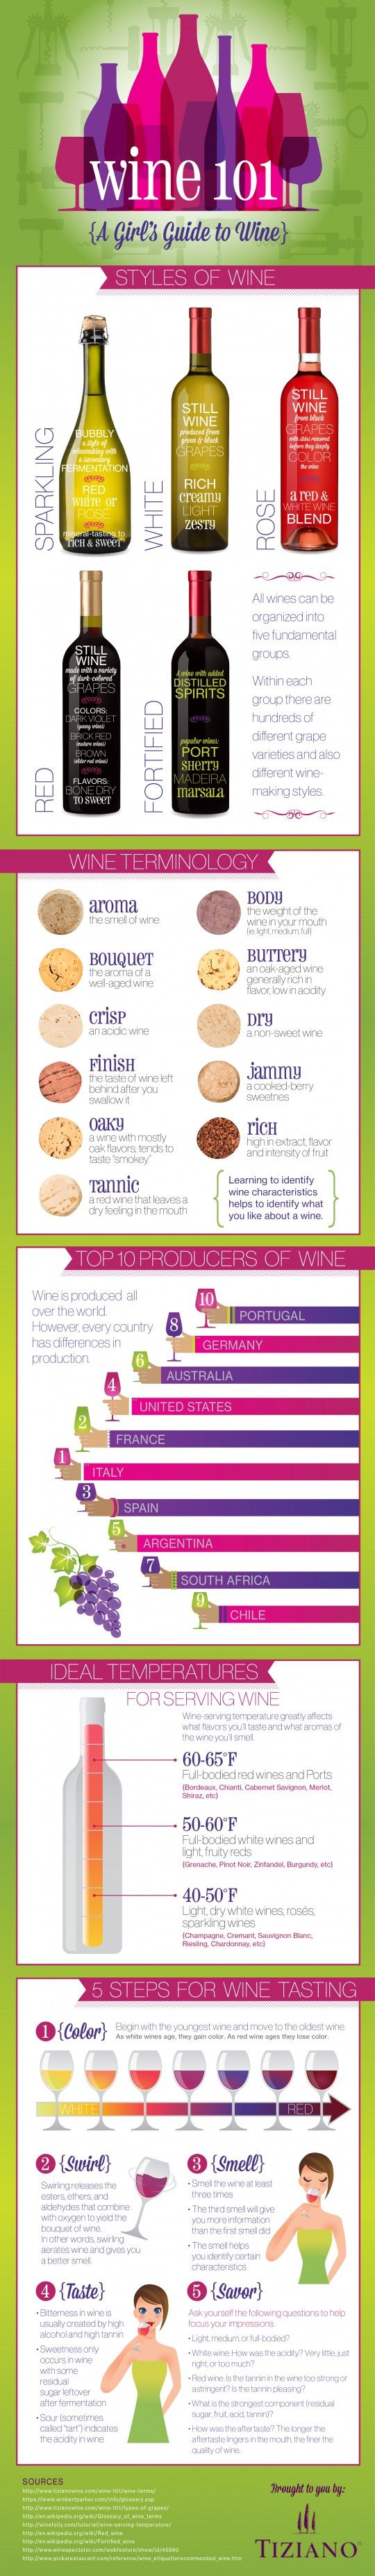 WINE 101- A girls guide to wine